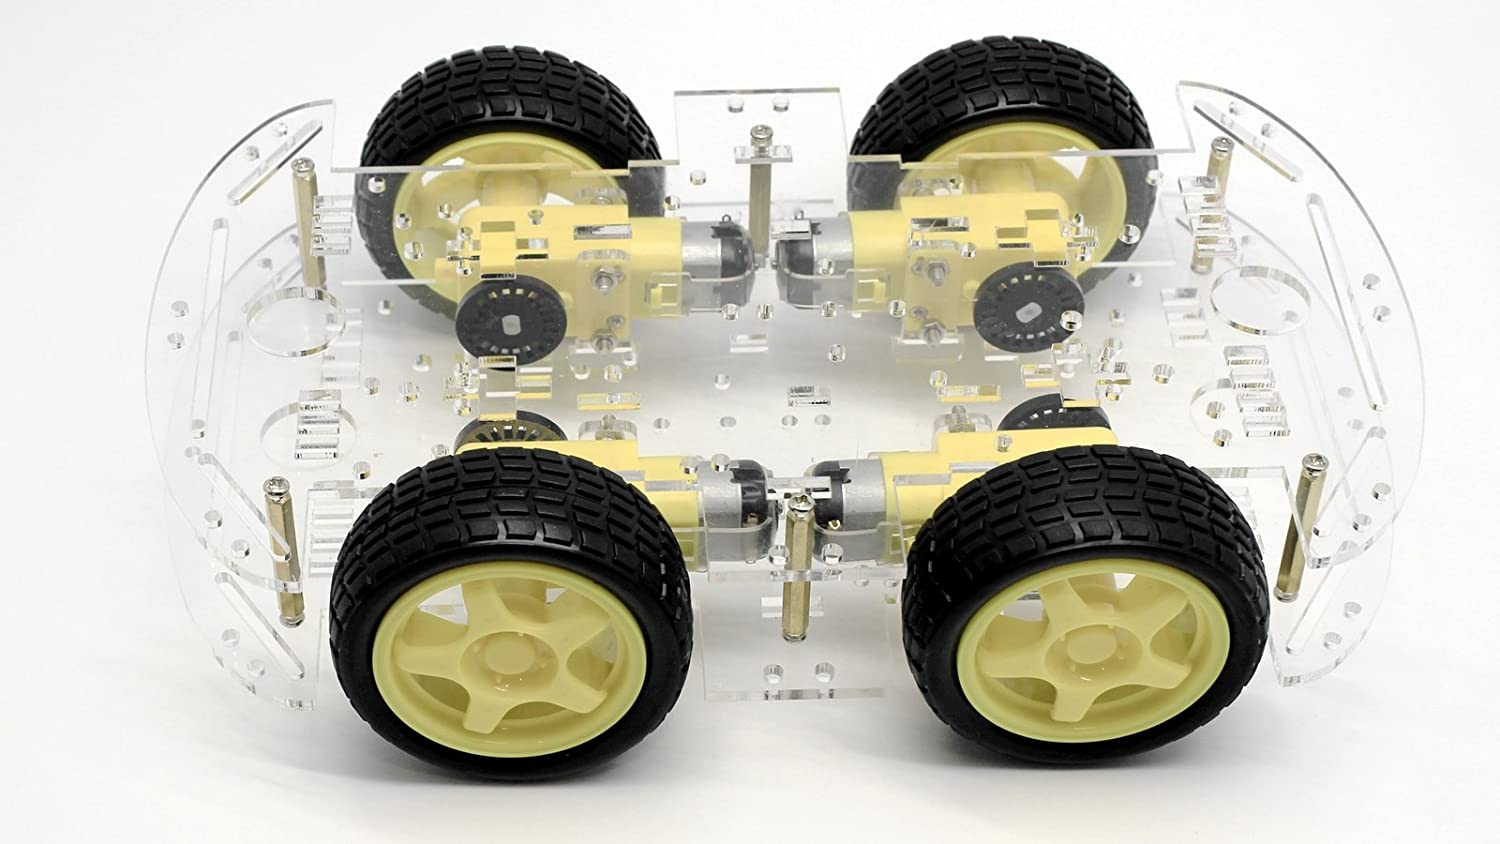 Raspberry Pi and Arduino compatible robot chassis with 4-motor drive